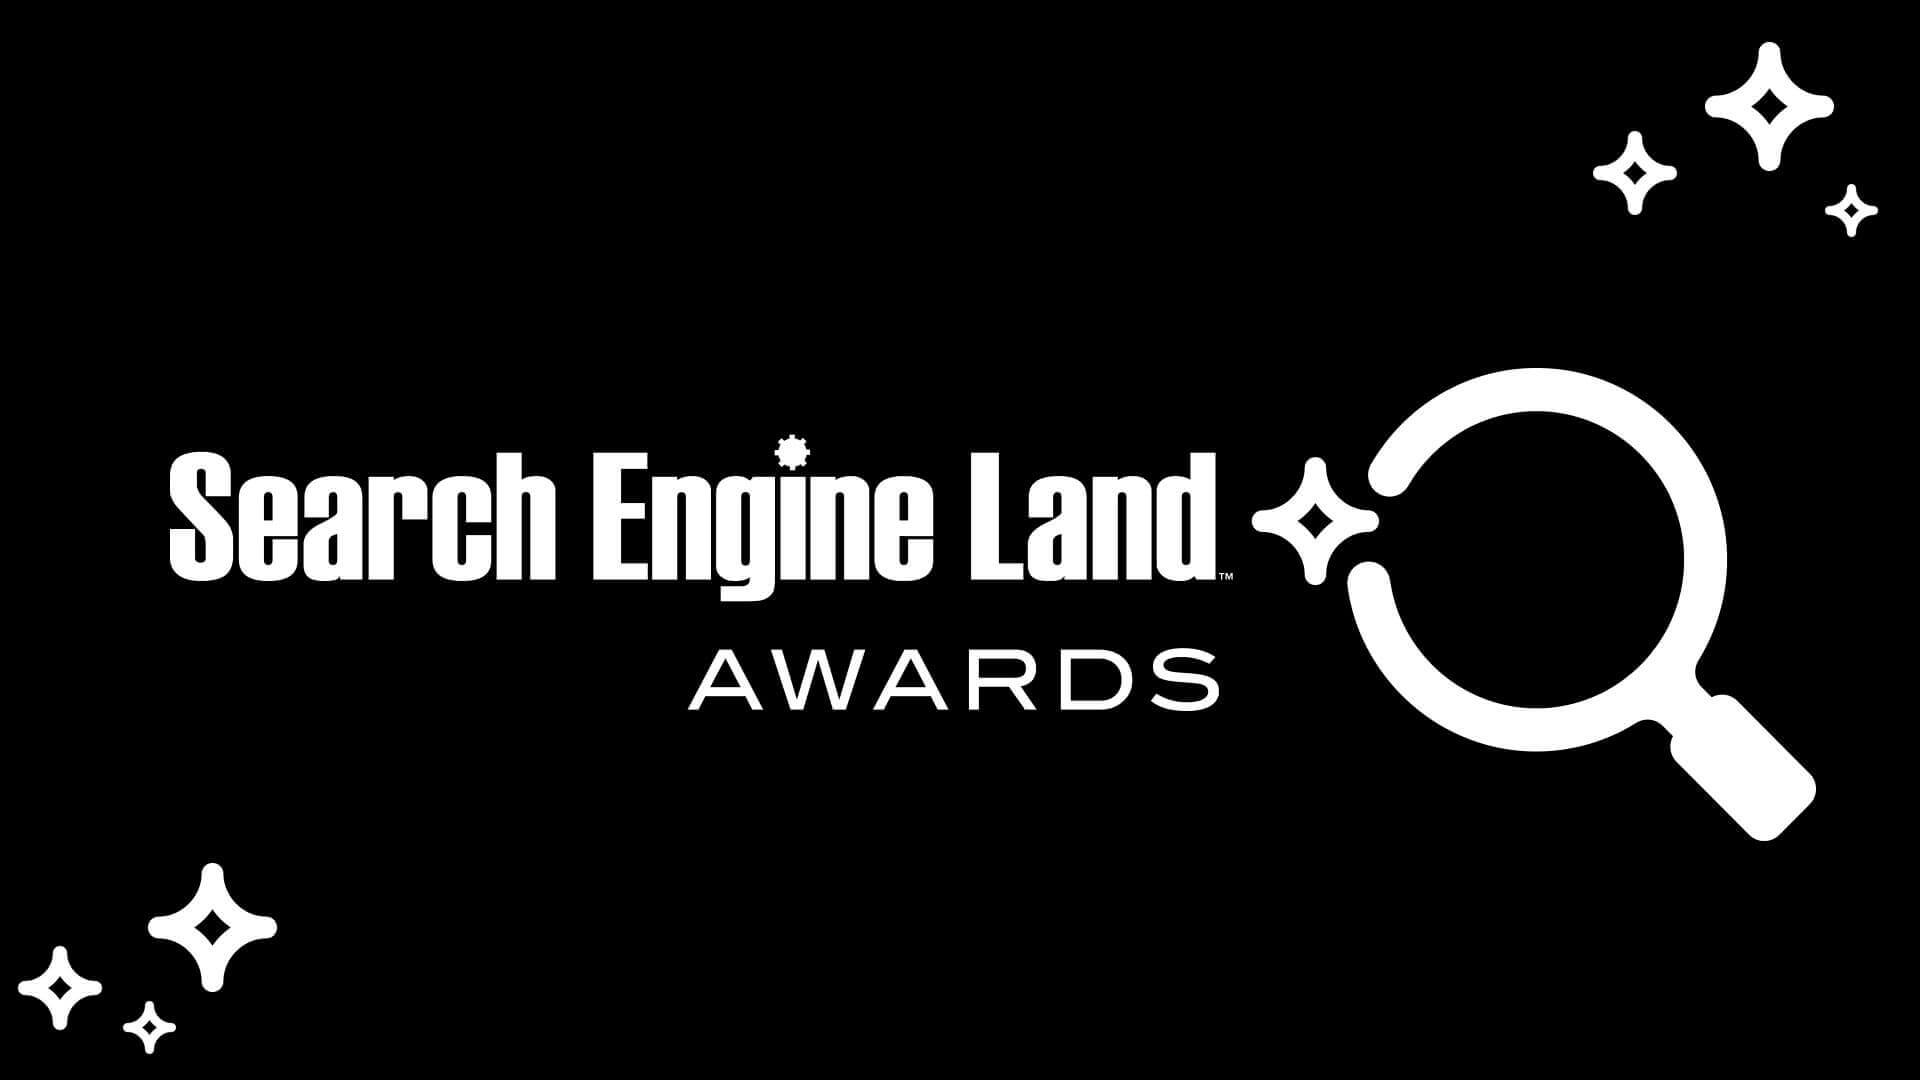 Search Engine Land Awards 2019 Finalists announced: Full list